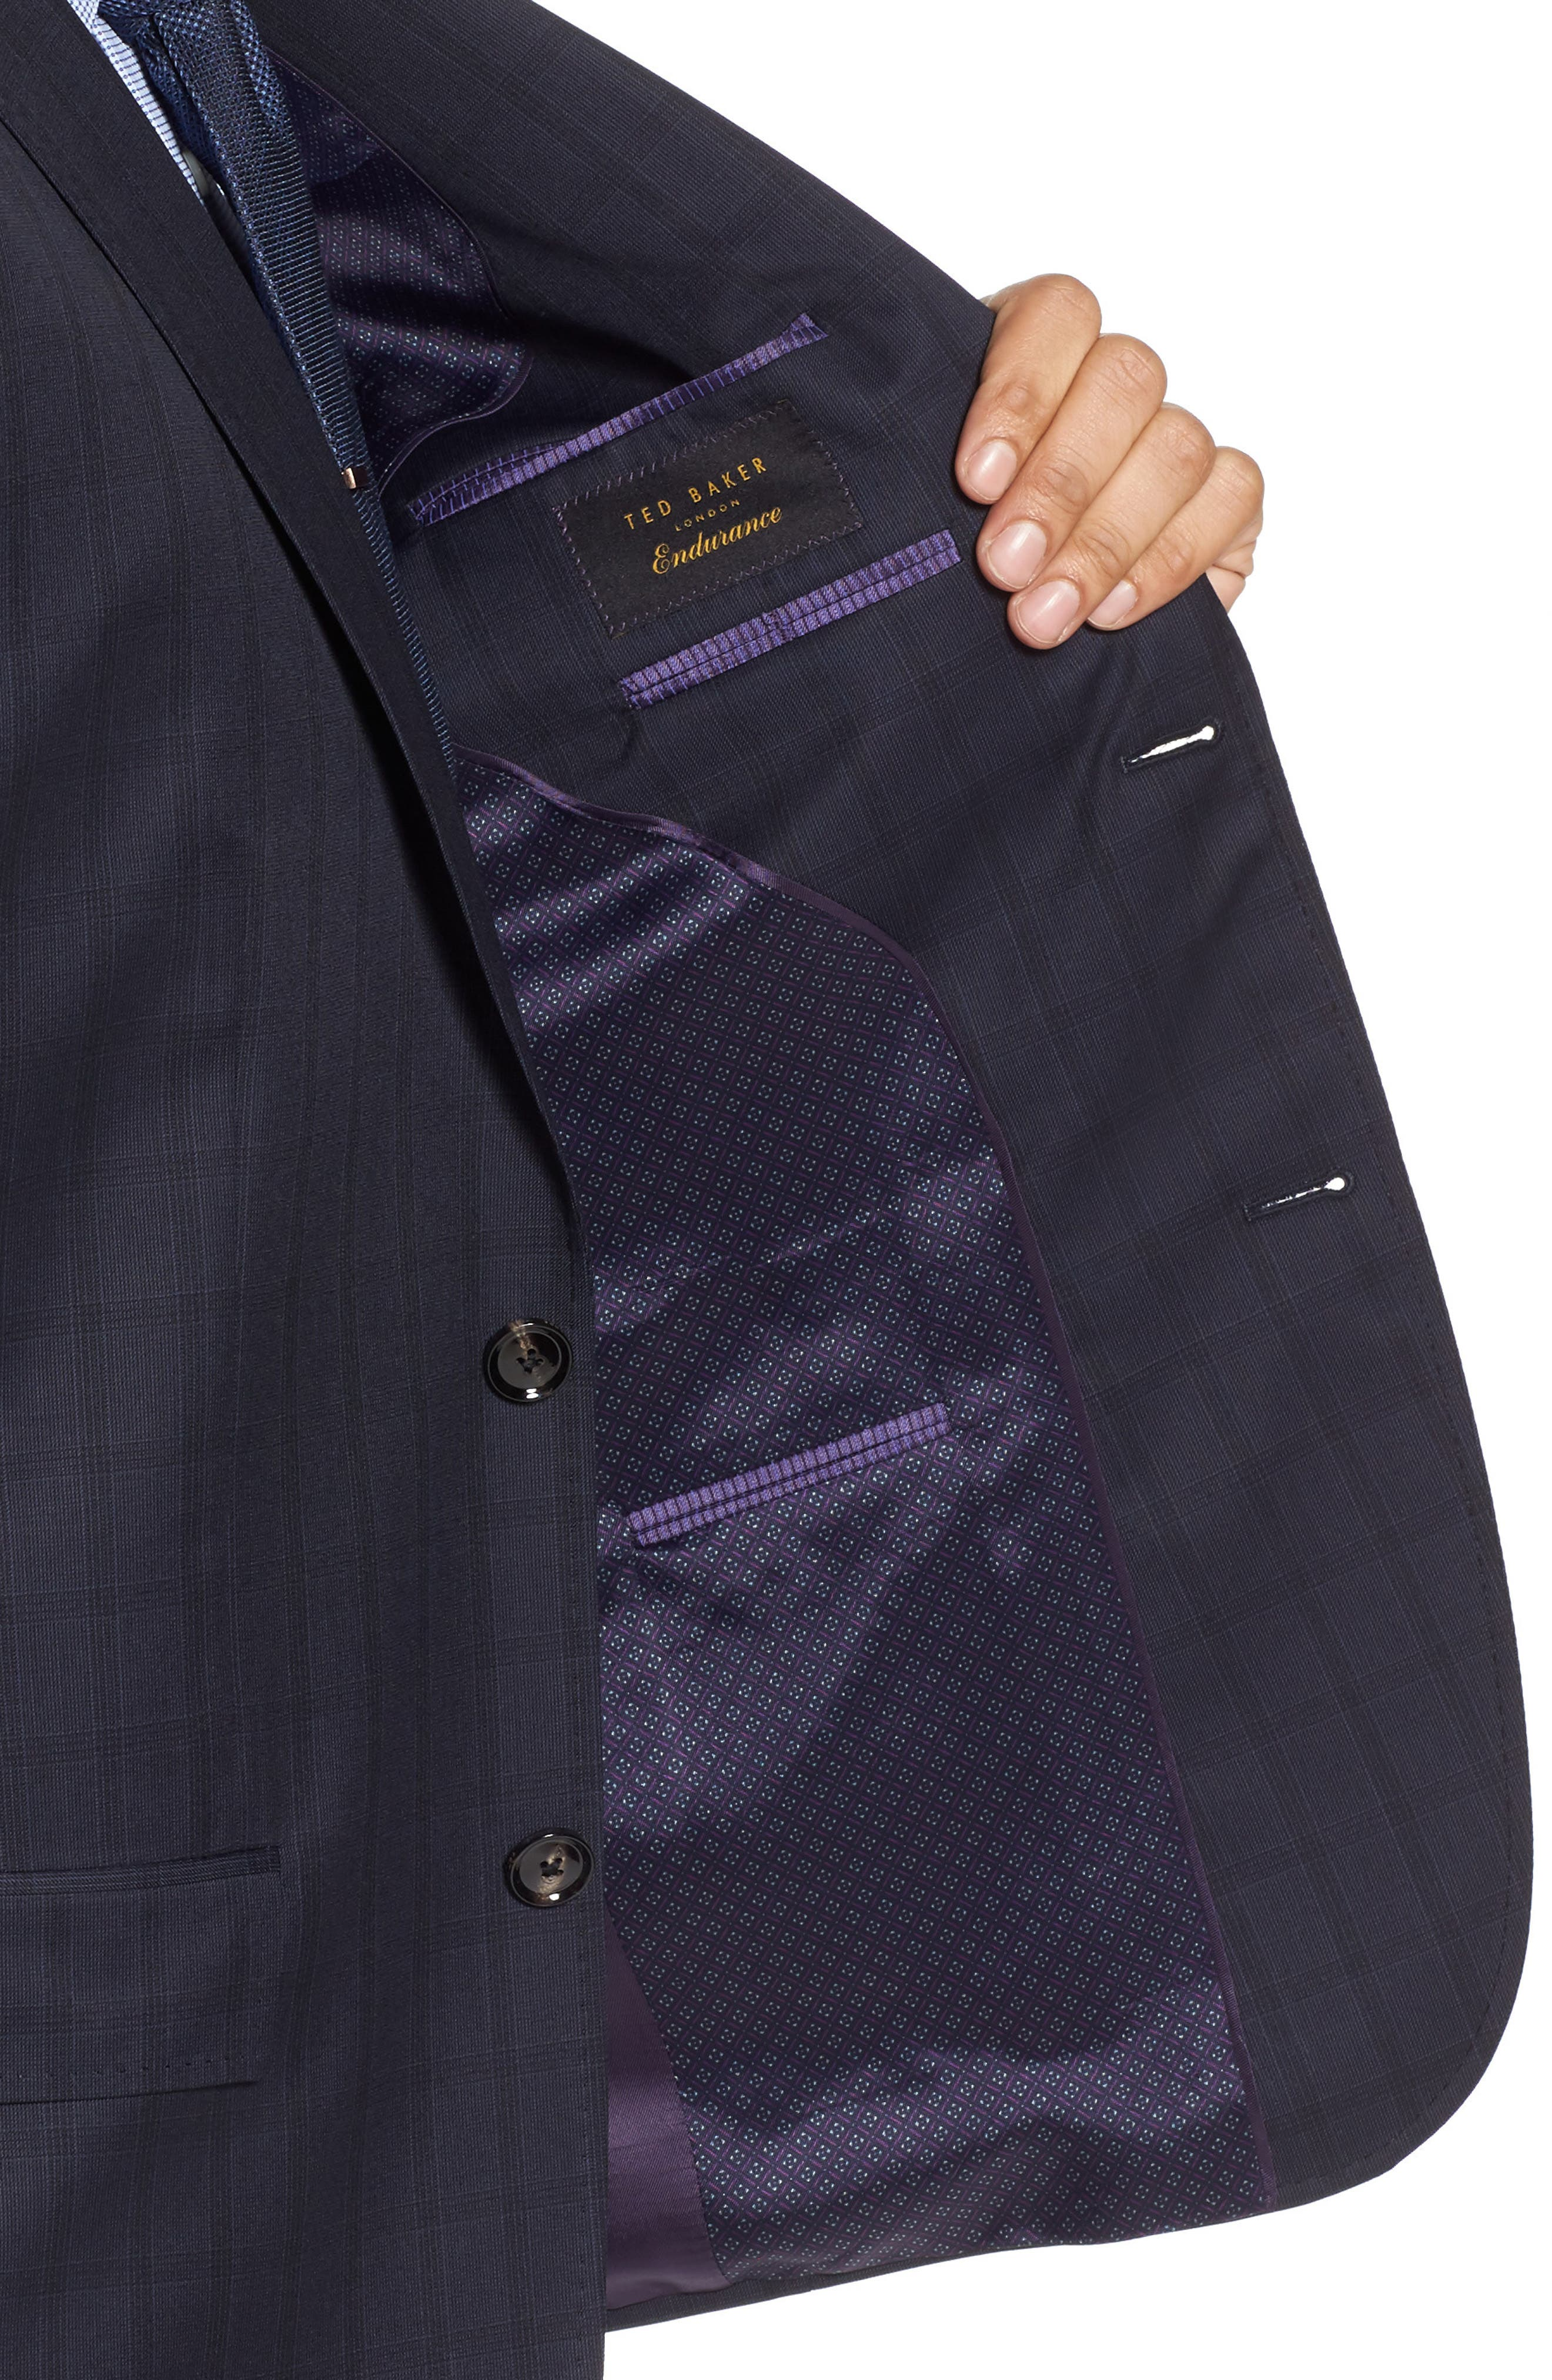 Jay Trim Fit Check Wool Suit,                             Alternate thumbnail 4, color,                             Navy